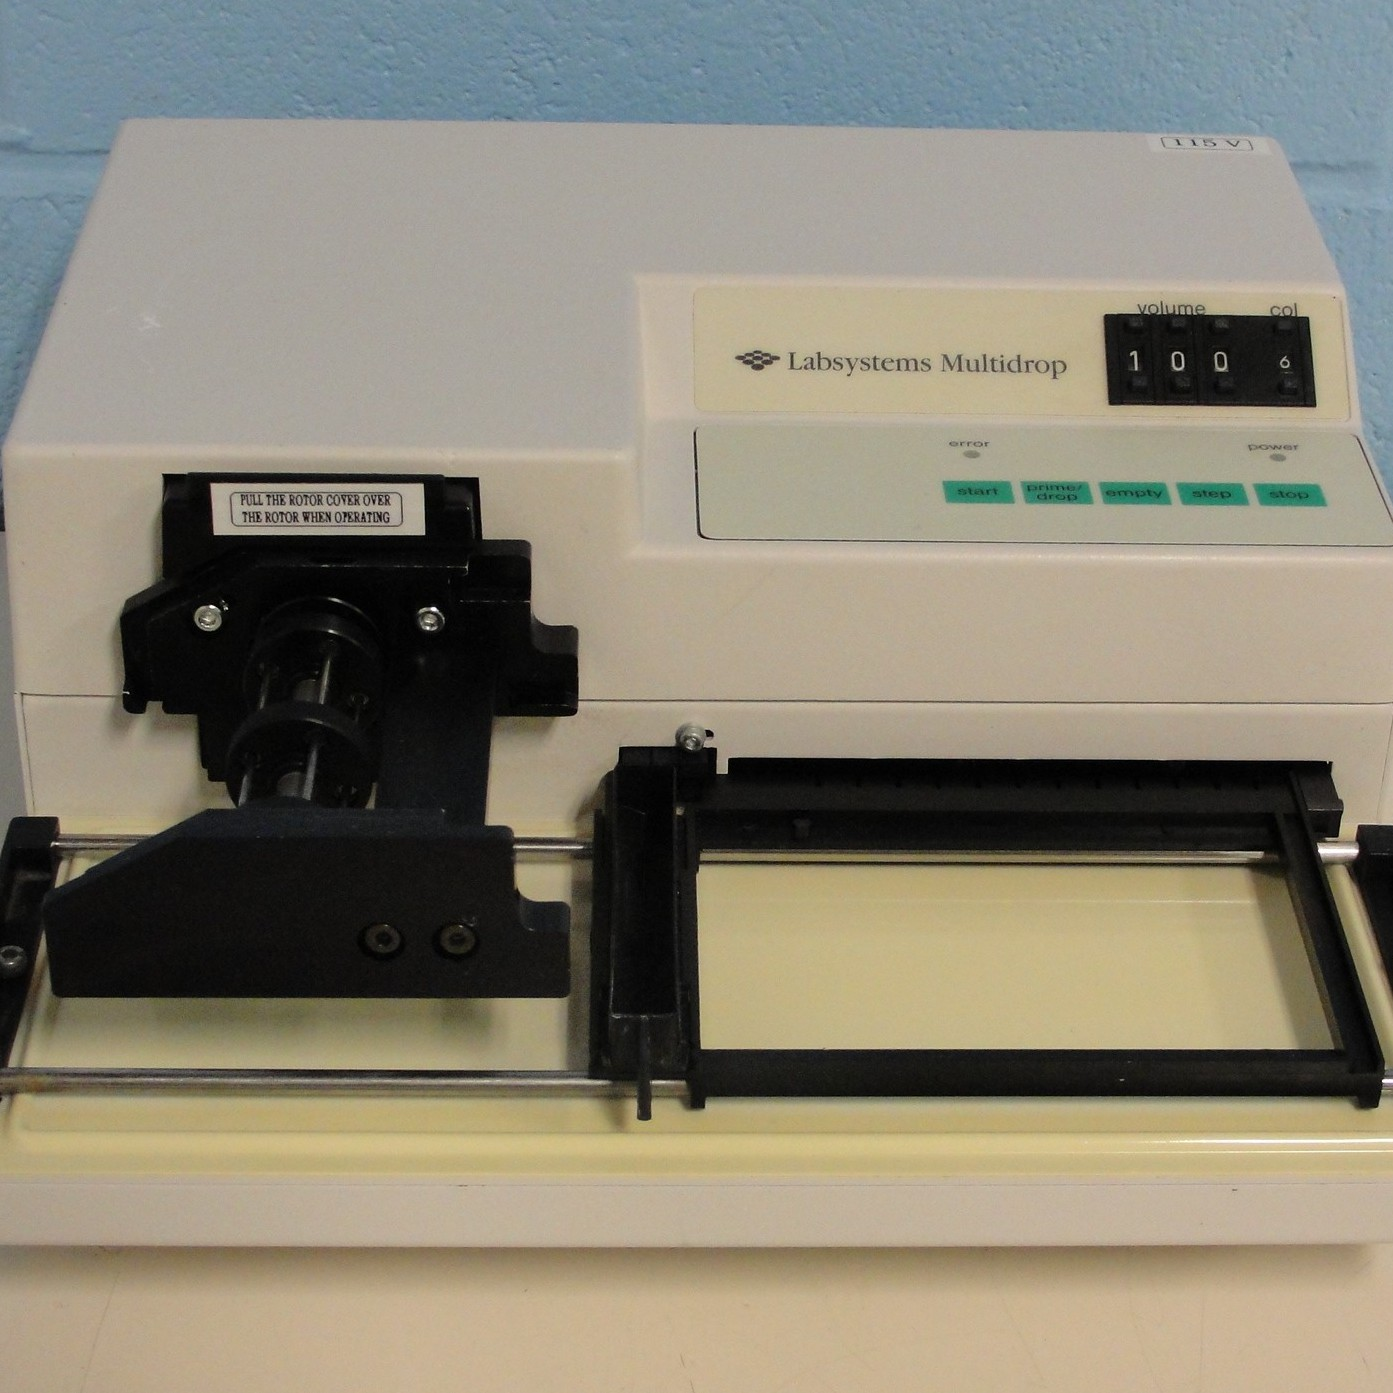 Thermo Labsystems Multidrop 384 Dispensing System Model 831 Image